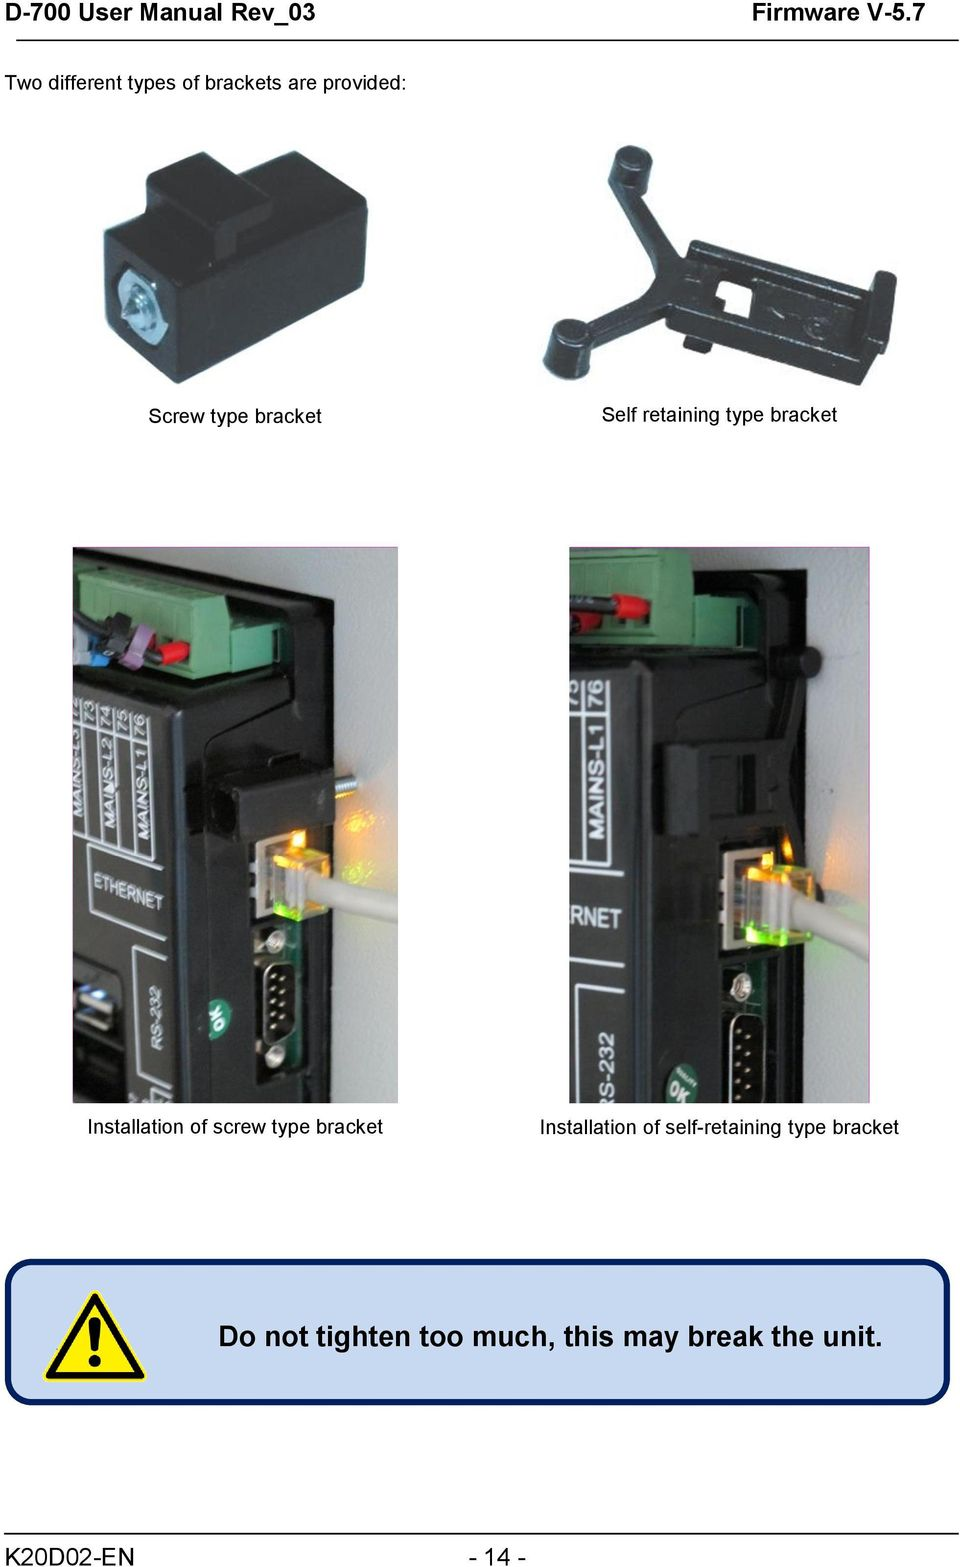 D 700 Advanced Synchronizing Genset Controller User Manual Split Ether Cable Together With Patch Panel Wiring Also Sobre Type Bracket Installation Of Self Retaining Do